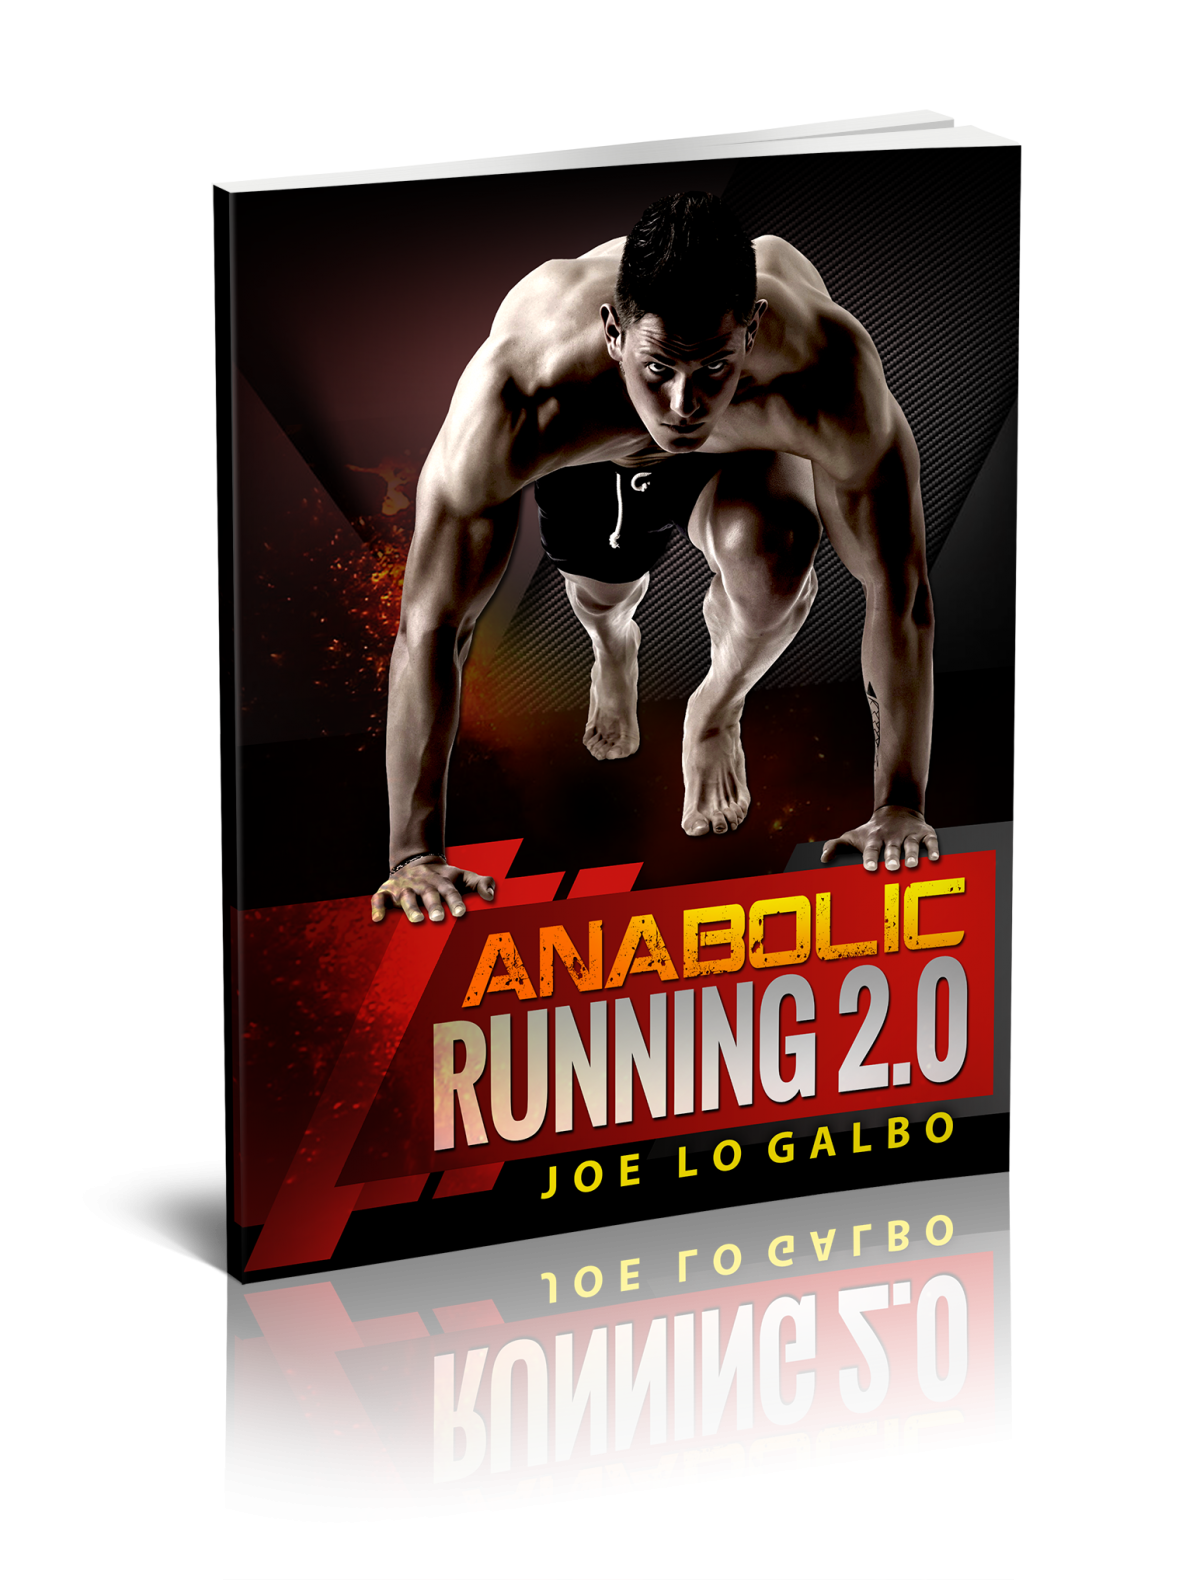 Anabolic Running Review-Anabolic Running Download